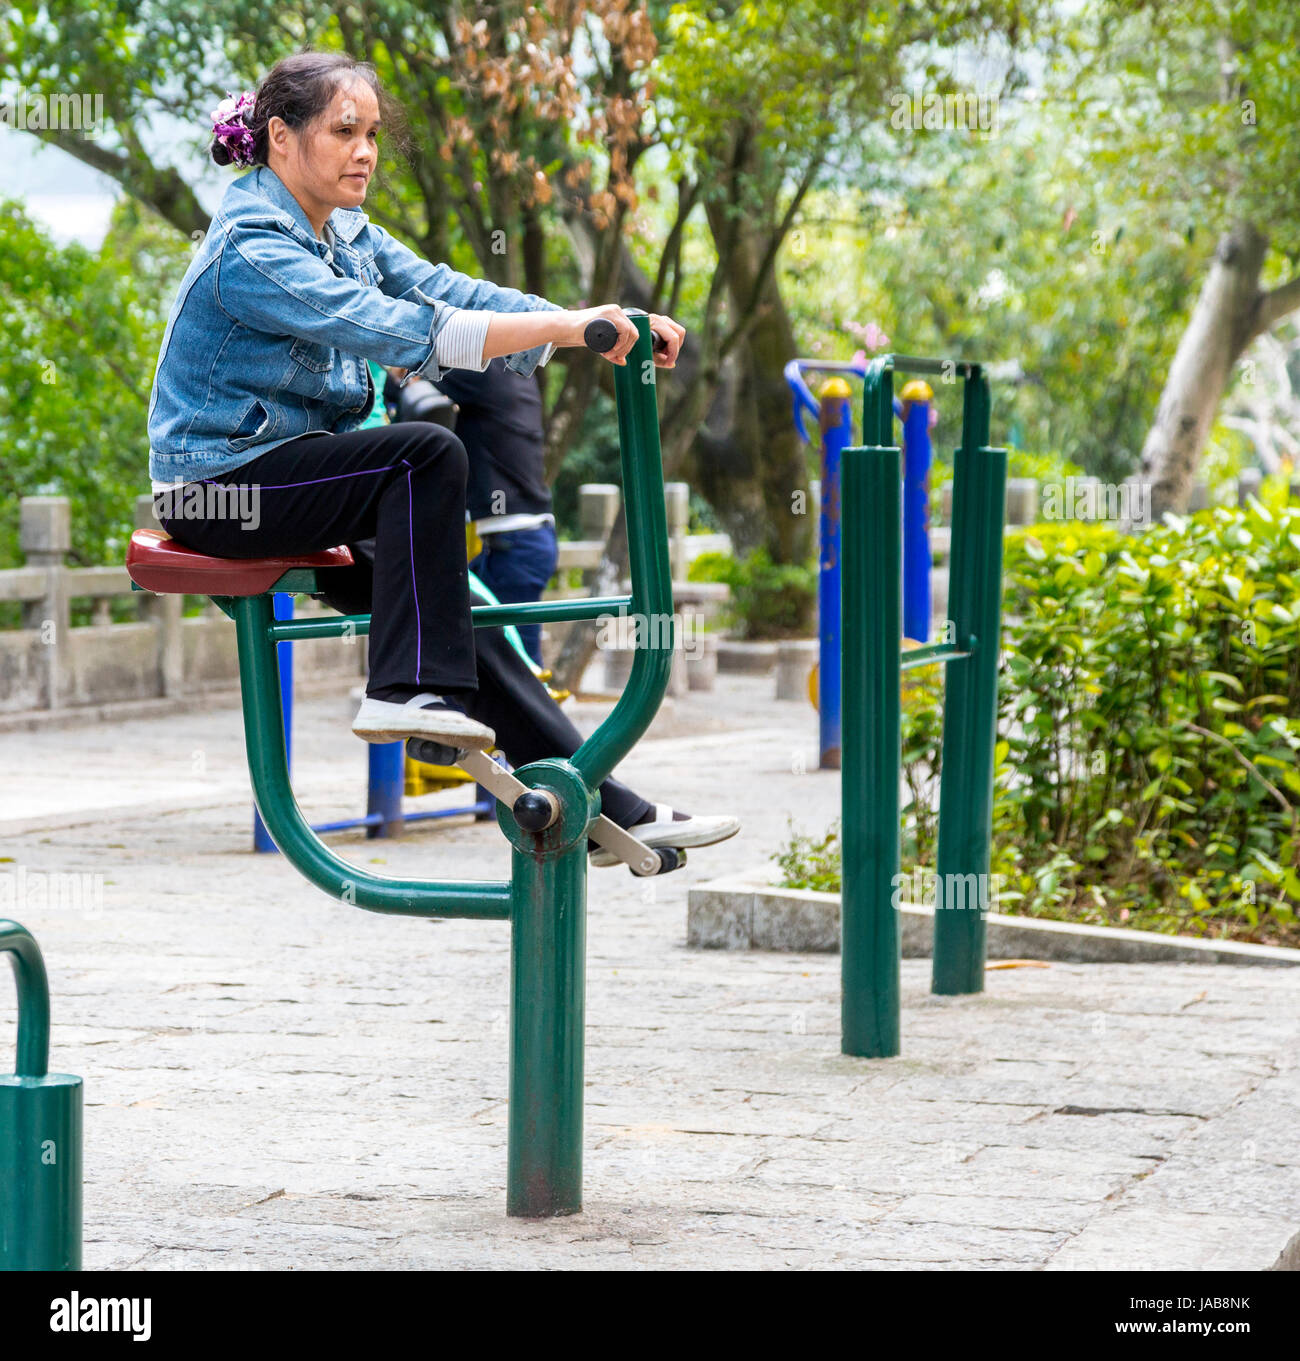 Yangshuo, China.  Woman Working Out on Public Exercise Equipment. - Stock Image